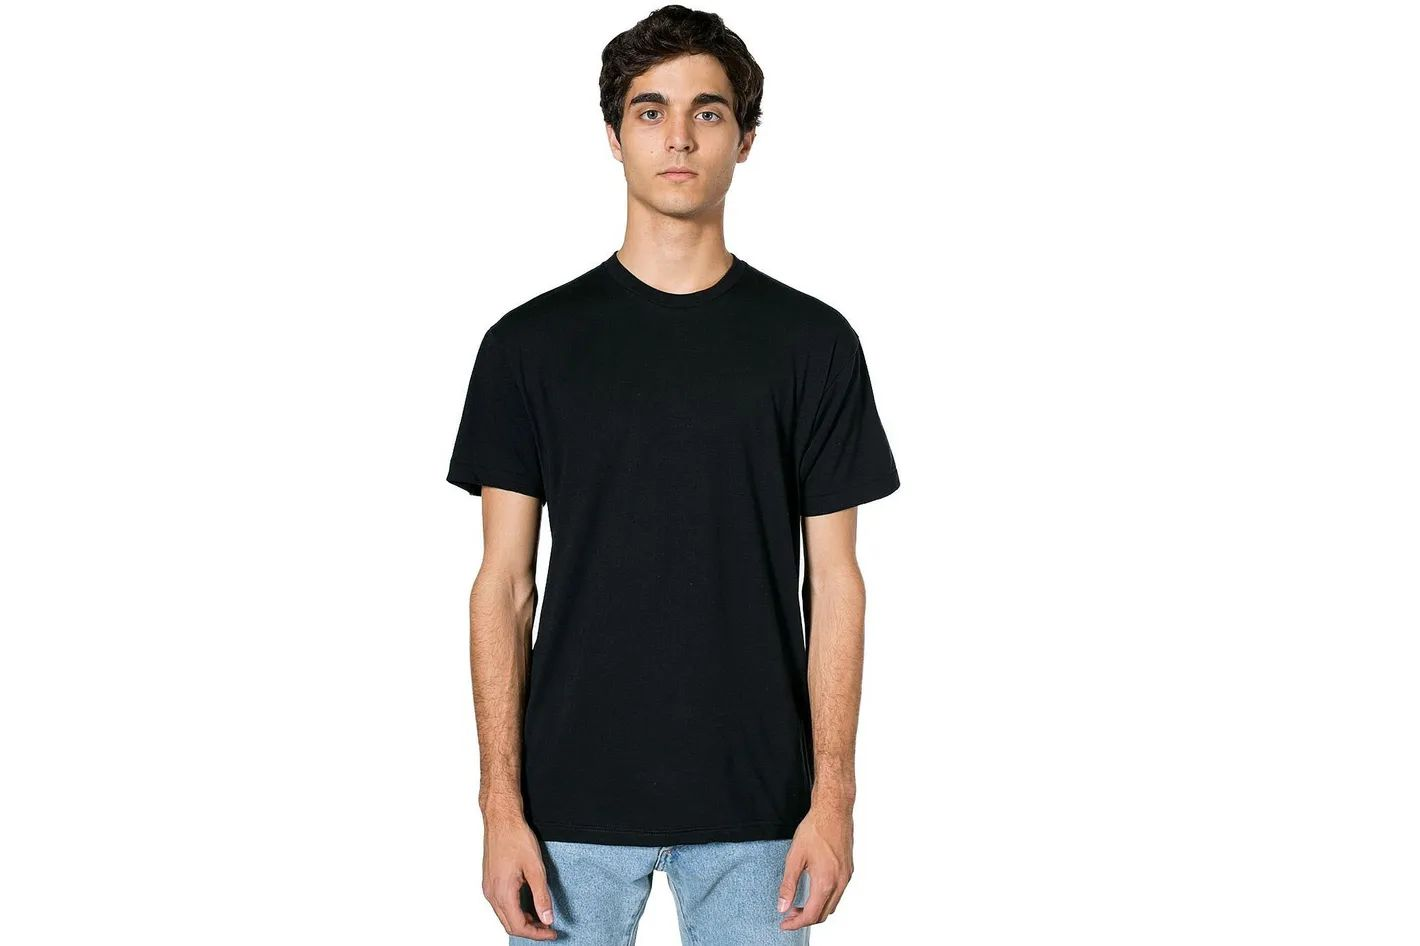 Other black t shirts i love